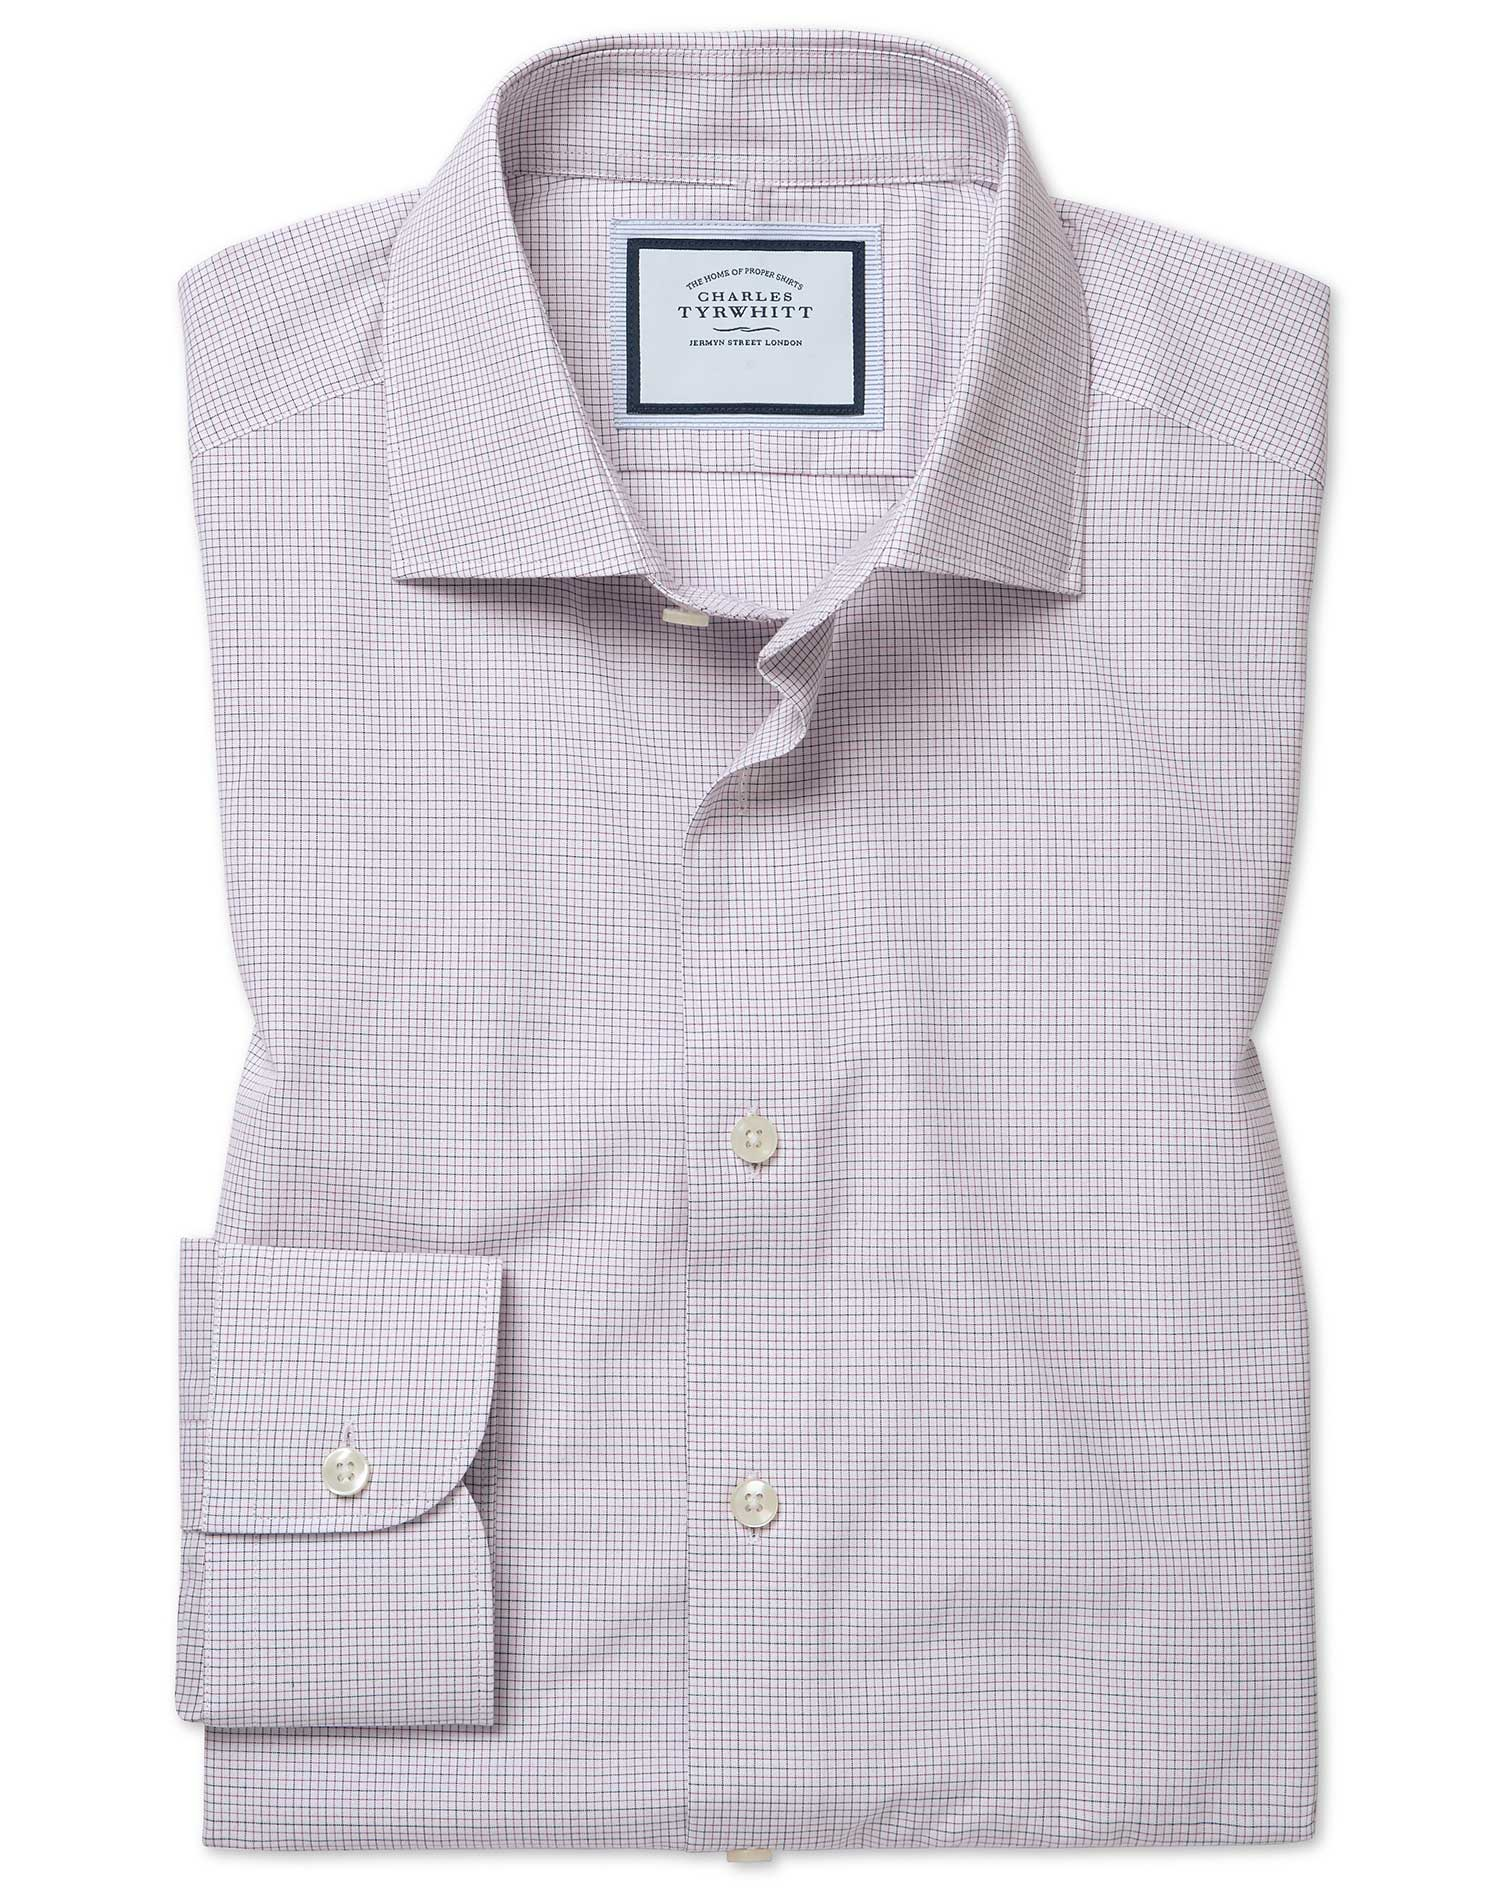 Extra Slim Fit Peached Egyptian Cotton Purple Check Formal Shirt Single Cuff Size 15/35 by Charles T